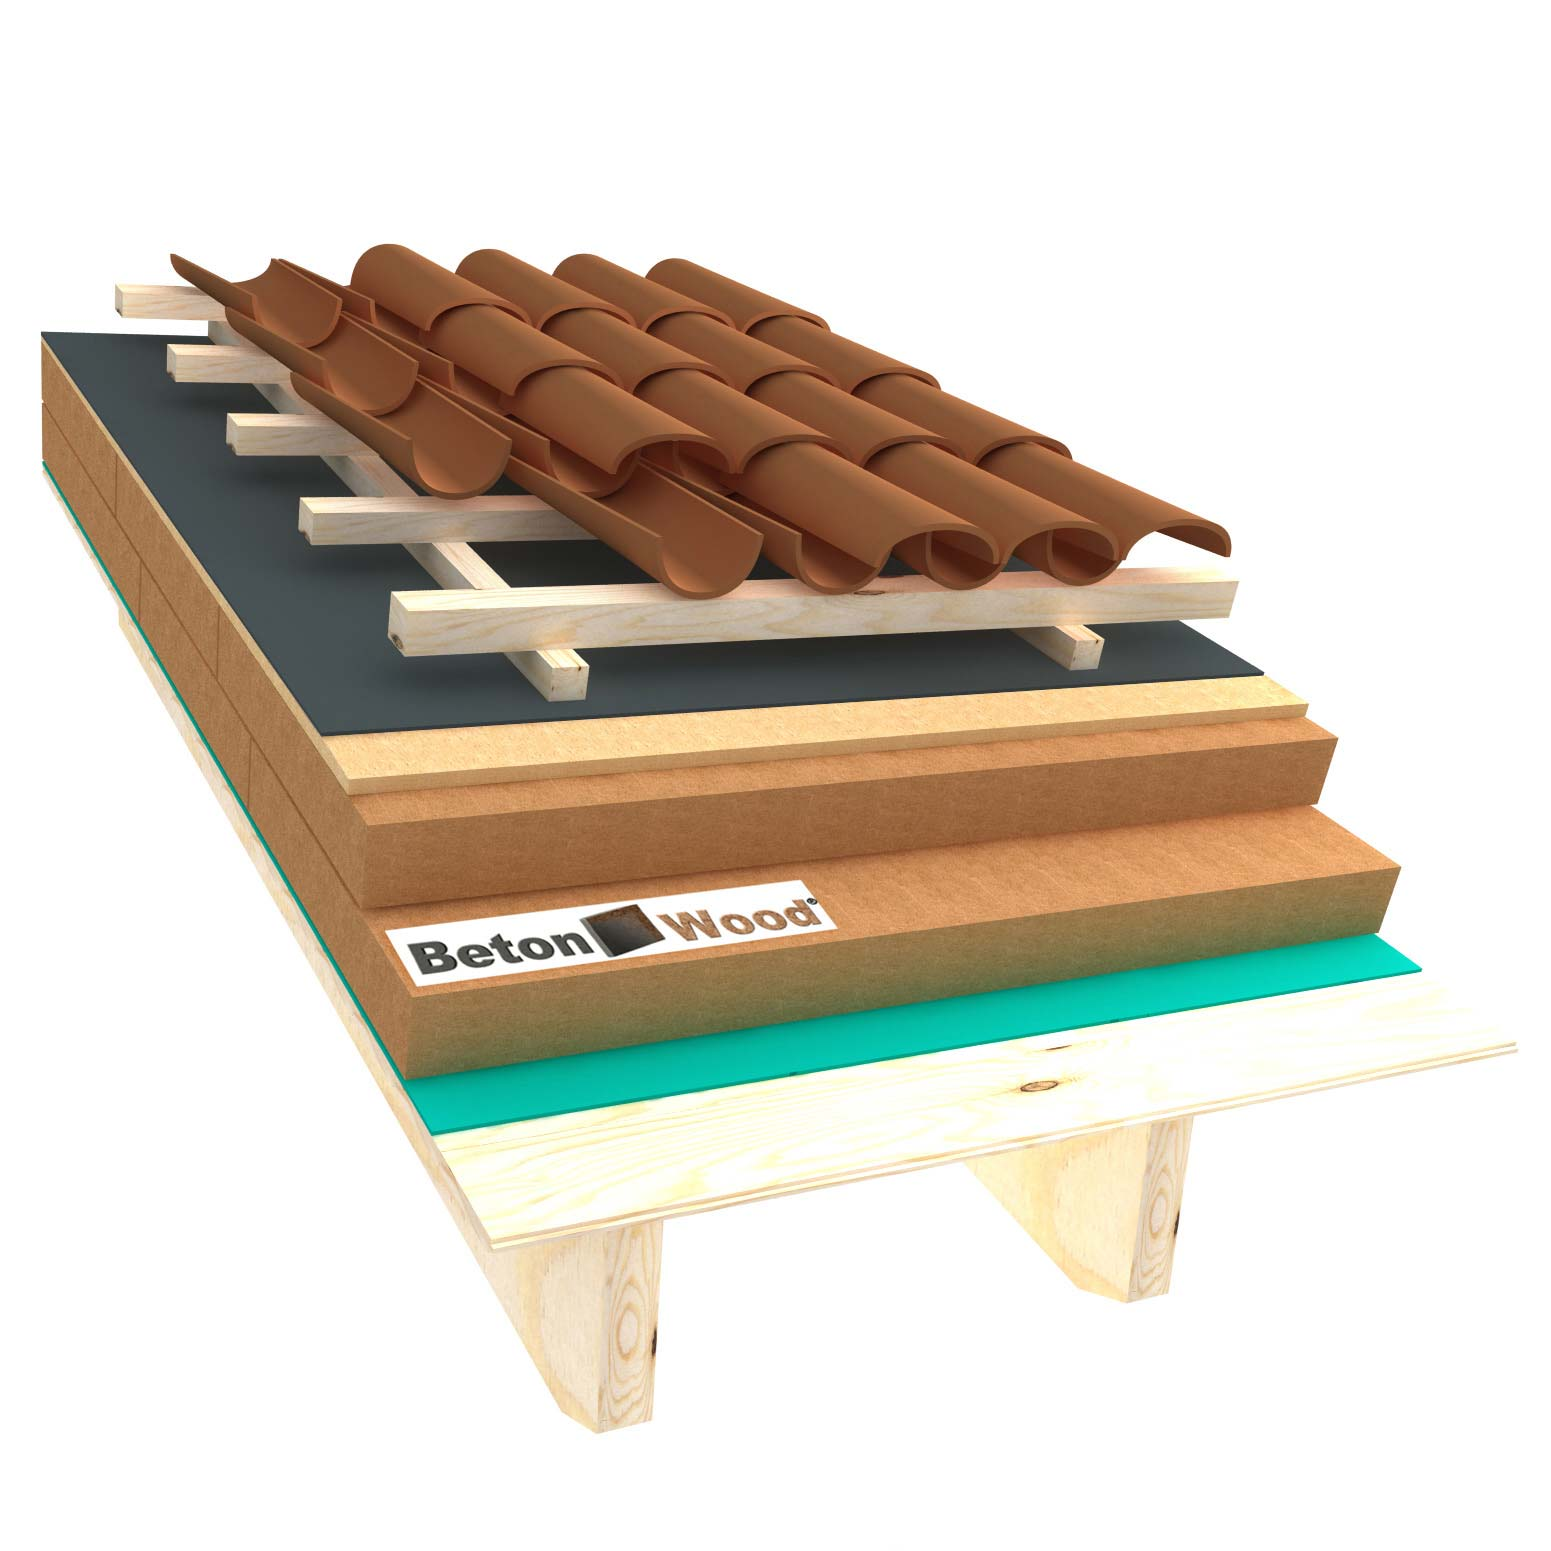 Ventilated roof with wood fibre board Isorel and Special on matchboarding